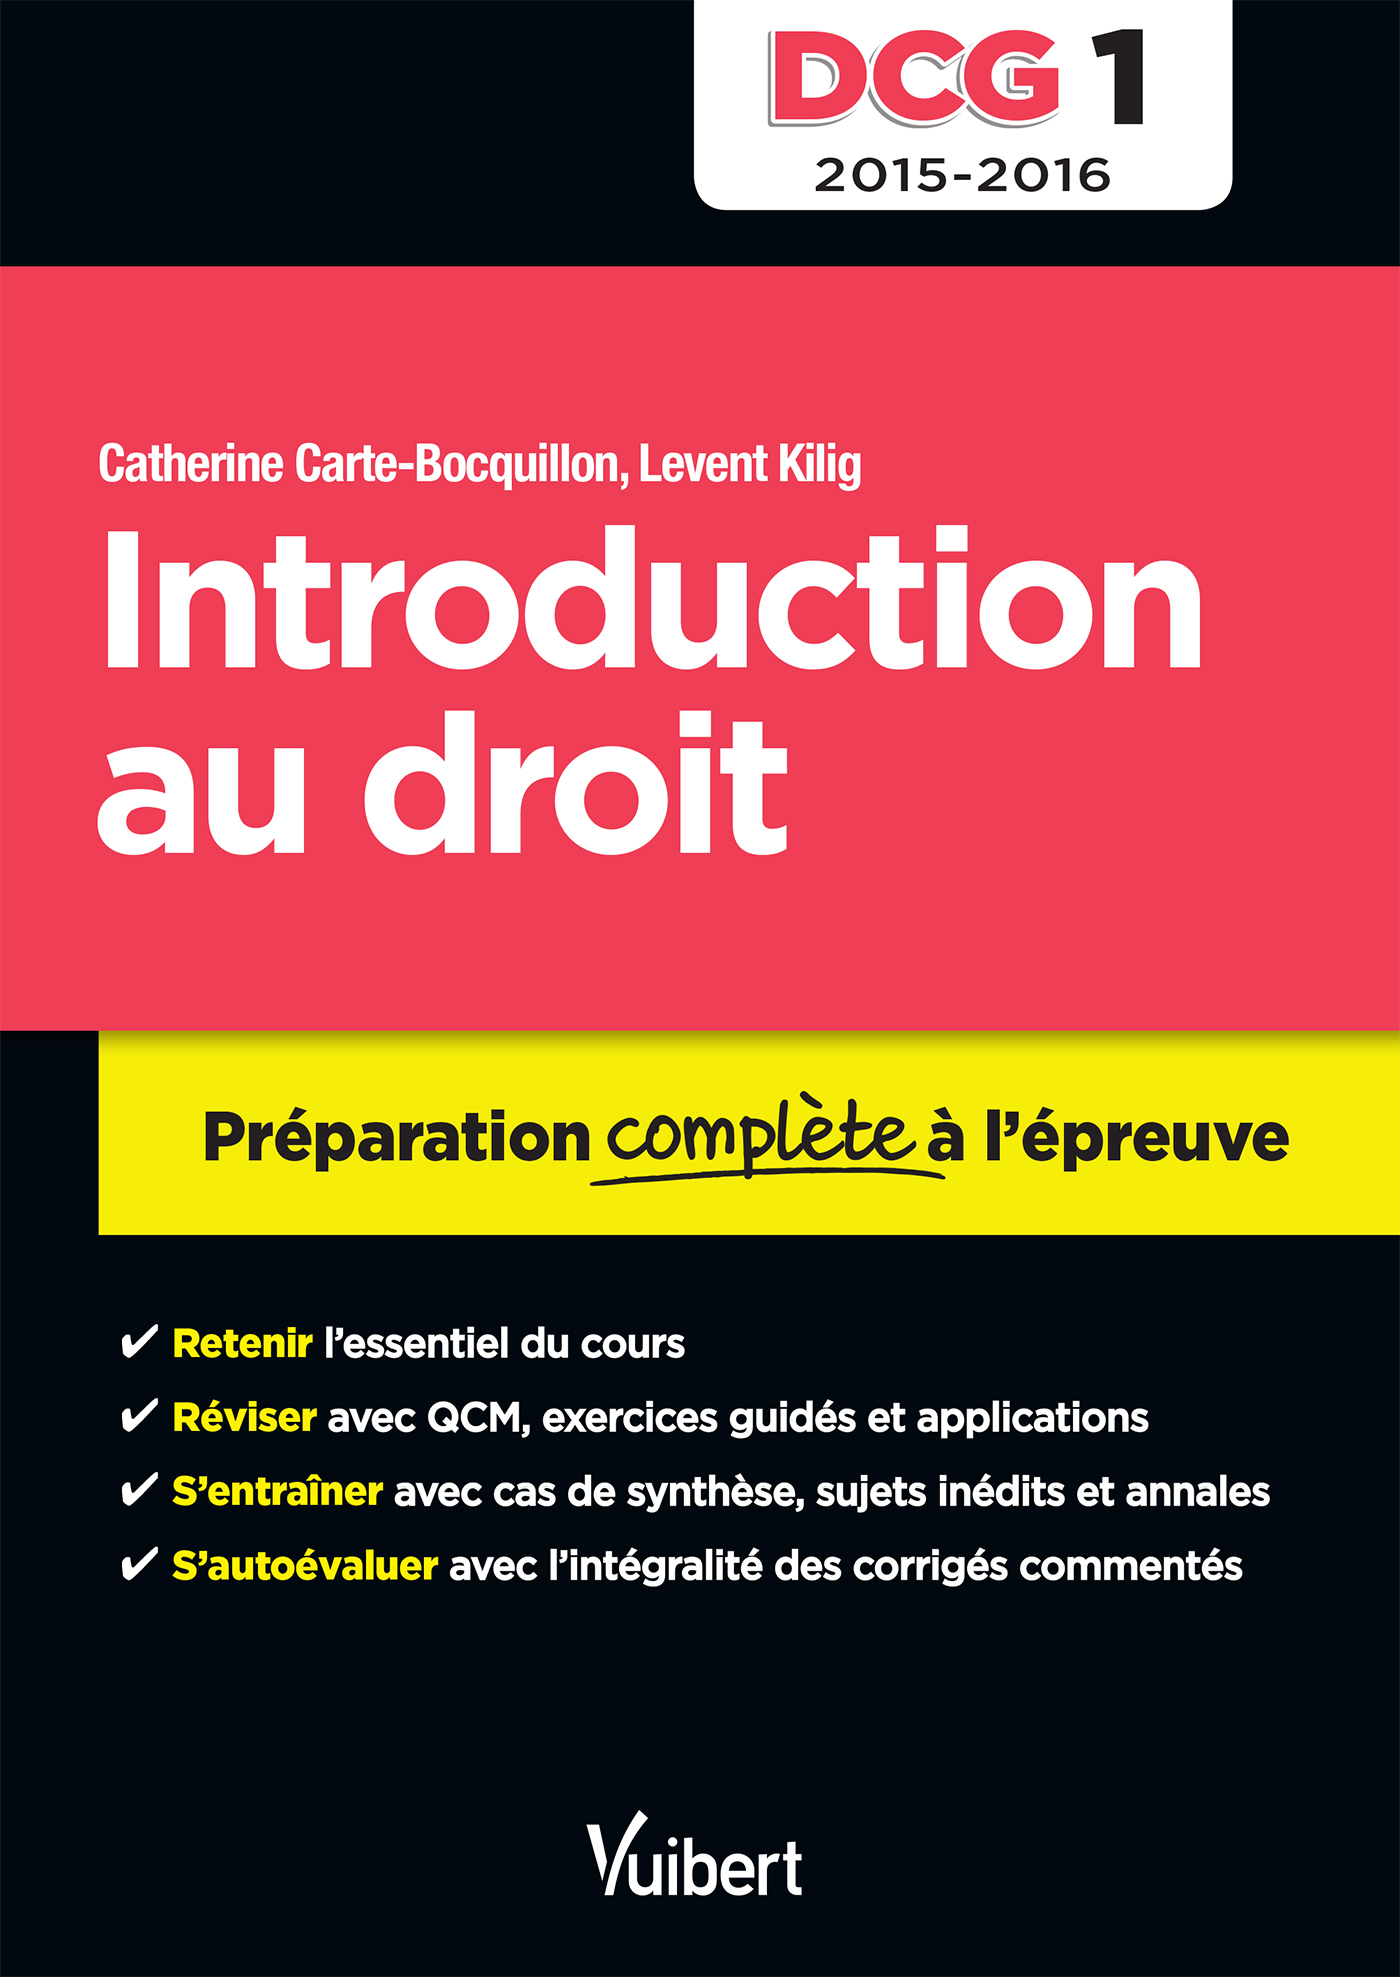 DCG 1 INTRODUCTION AU DROIT